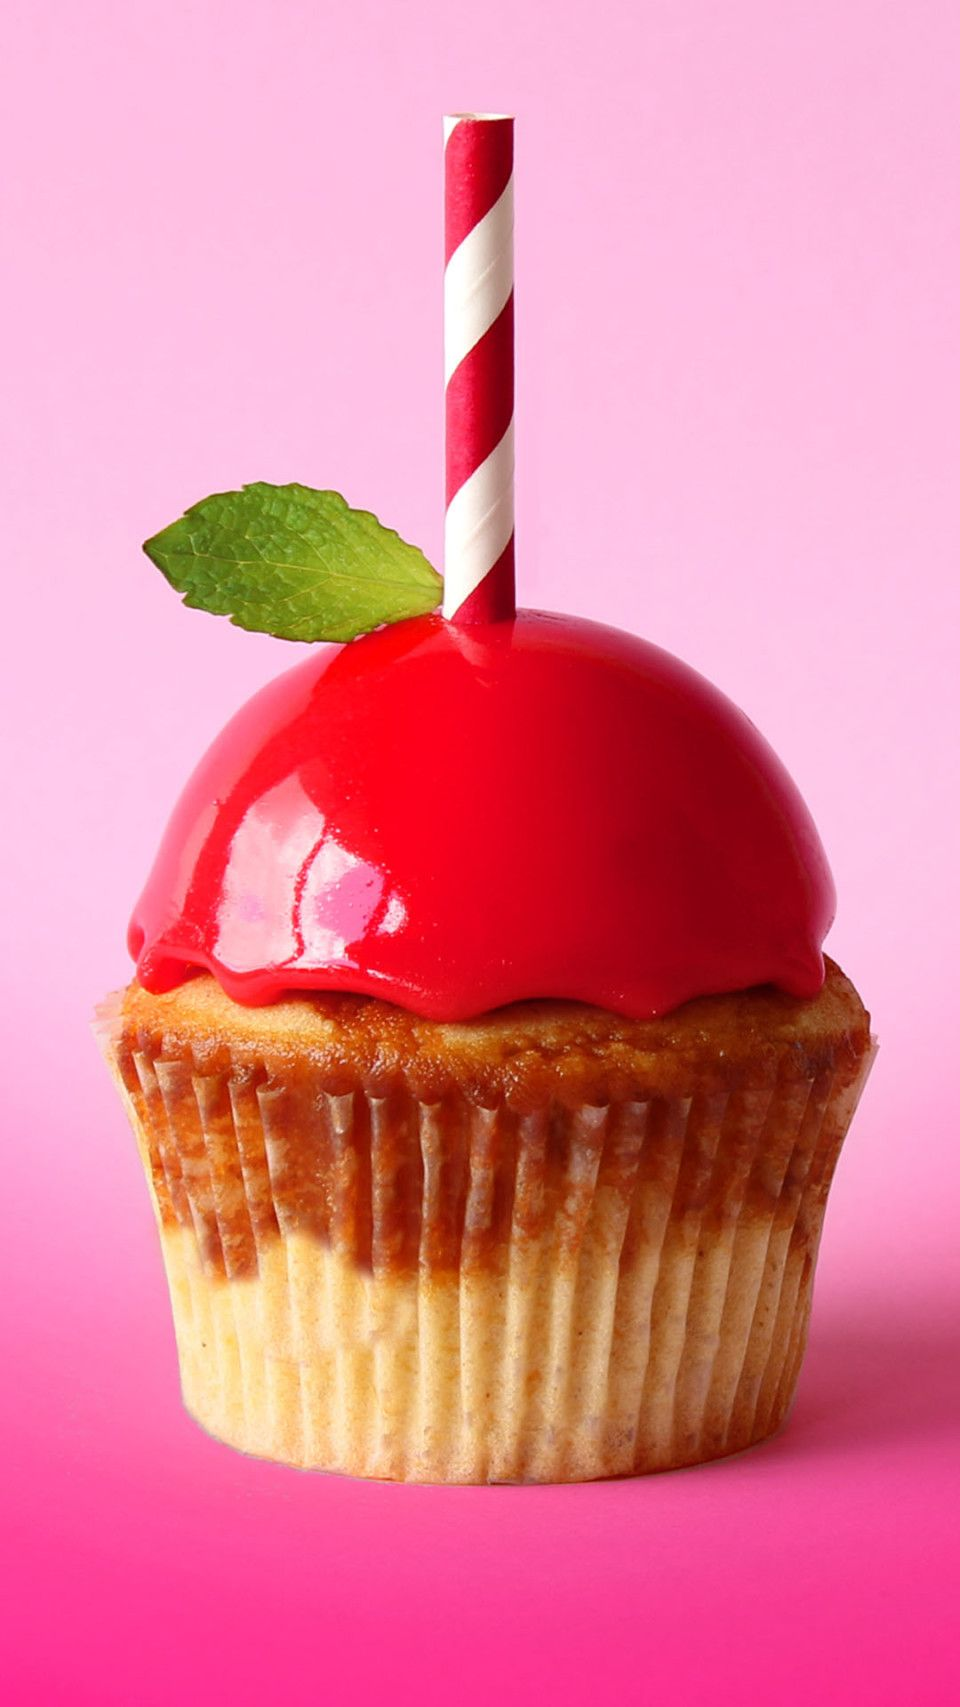 Candy Apple Cupcakes Recipe (With images) Candy apples